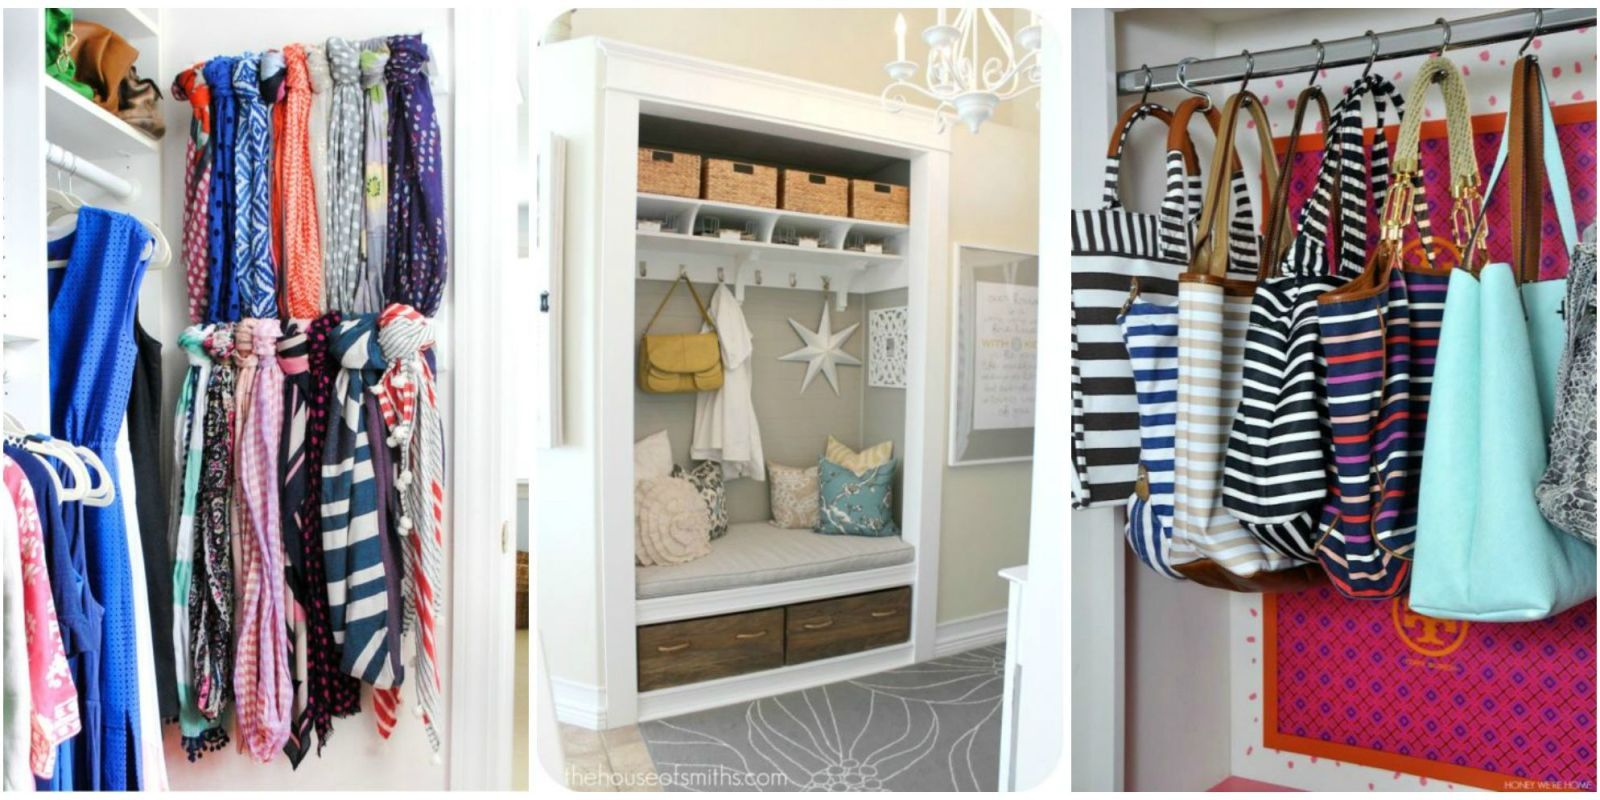 Superbe These Tips Will Give You The Most Organized Closet Ever.